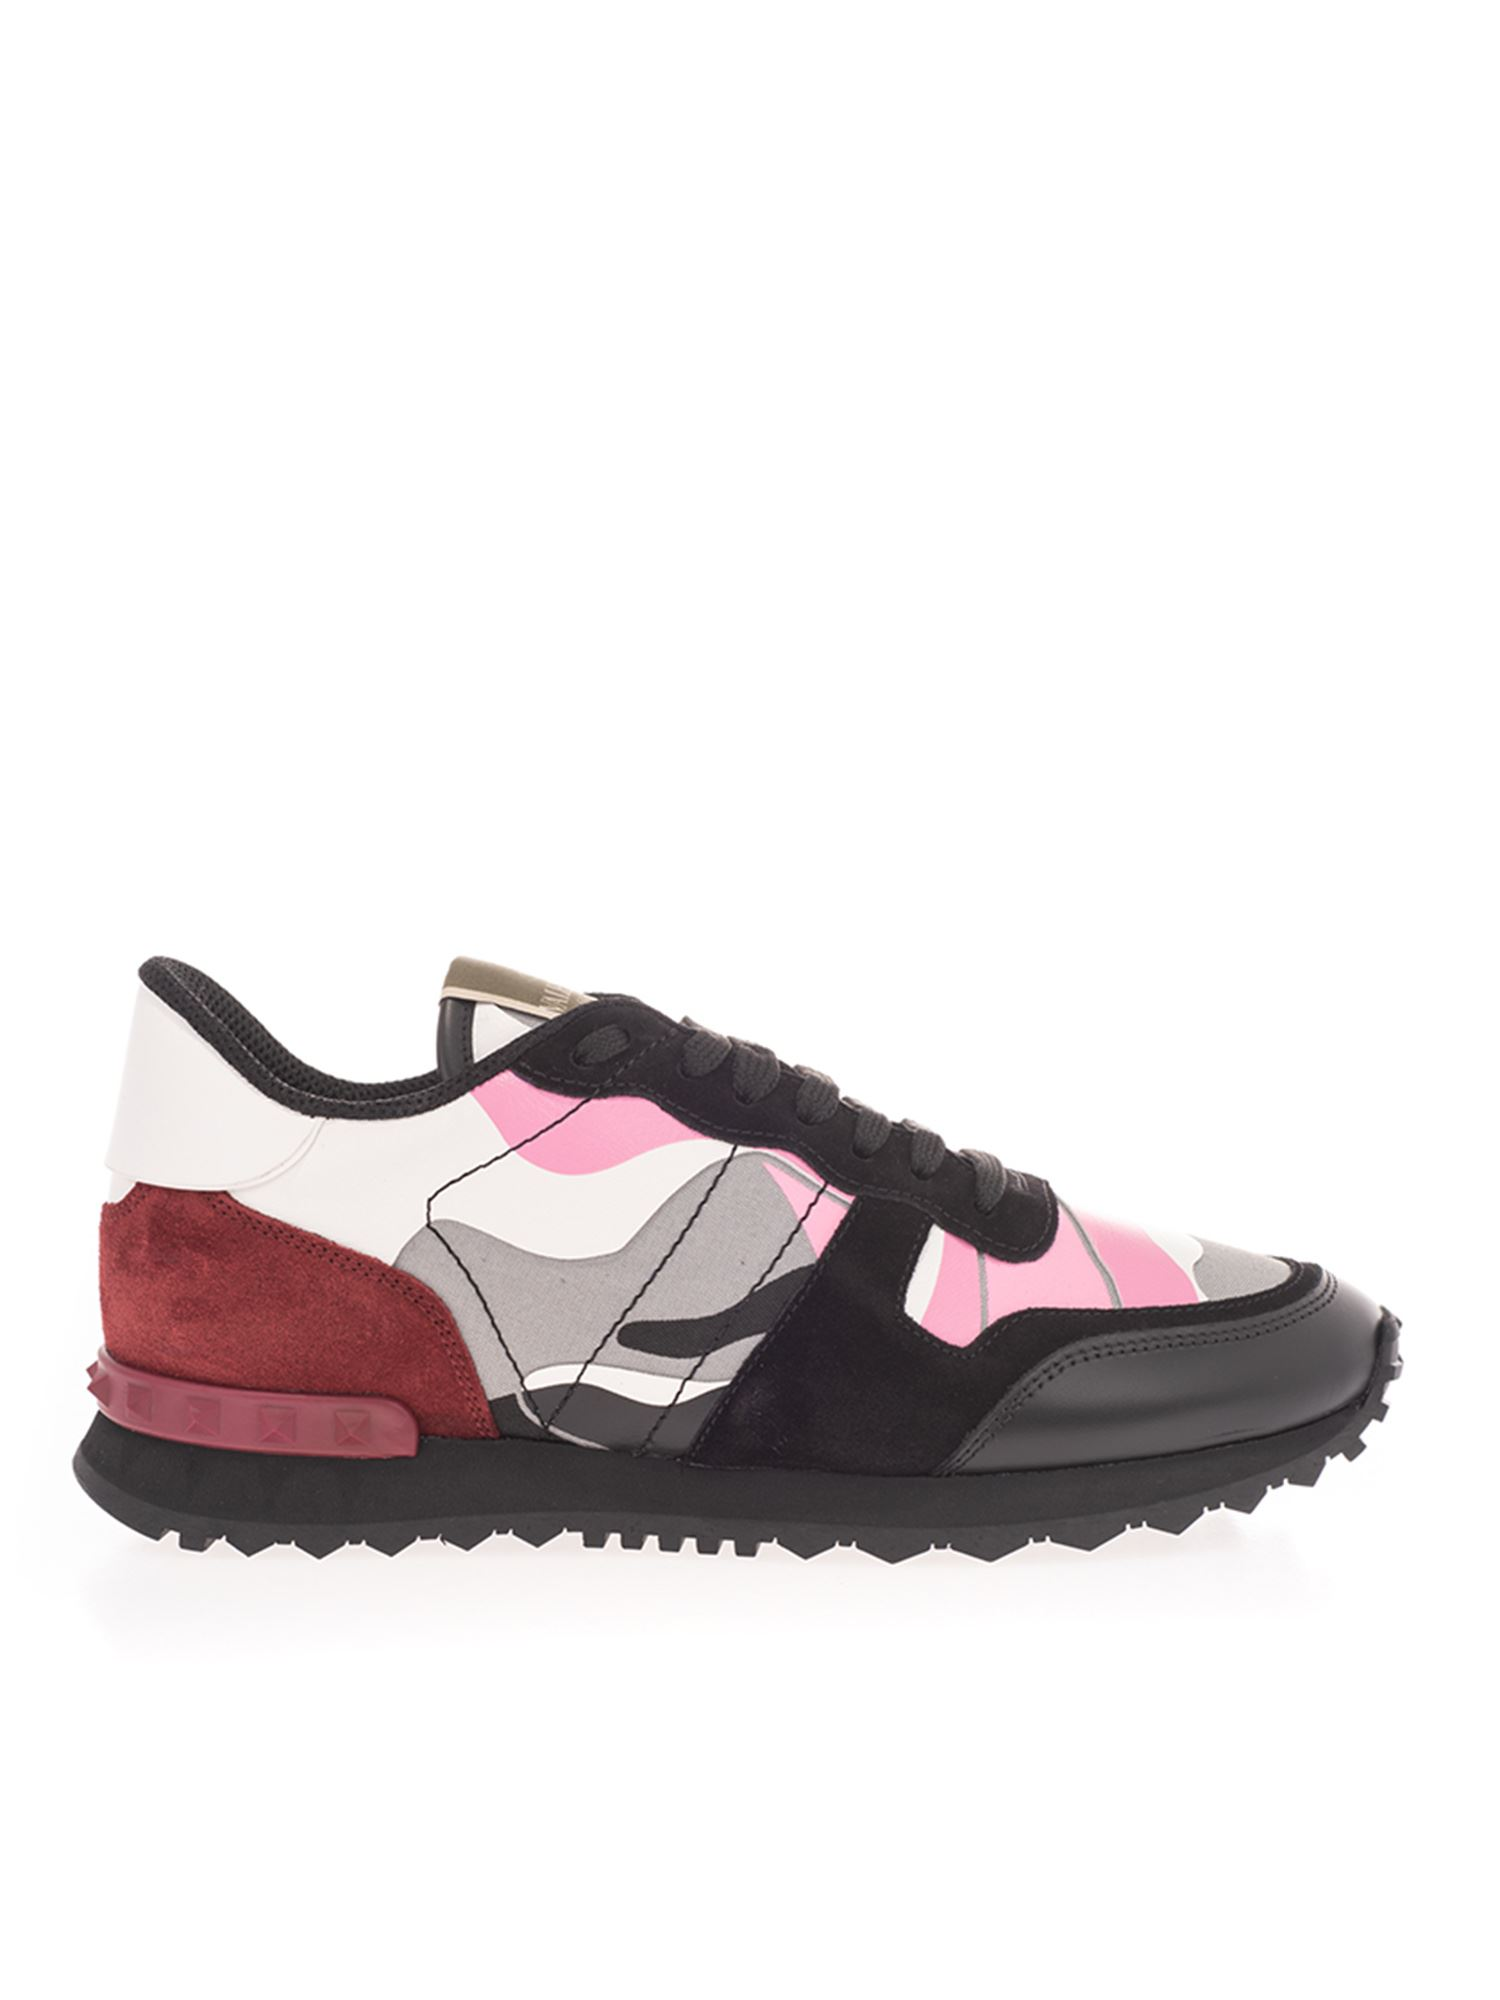 Valentino ROCKRUNNER SNEAKERS IN PINK AND BLACK